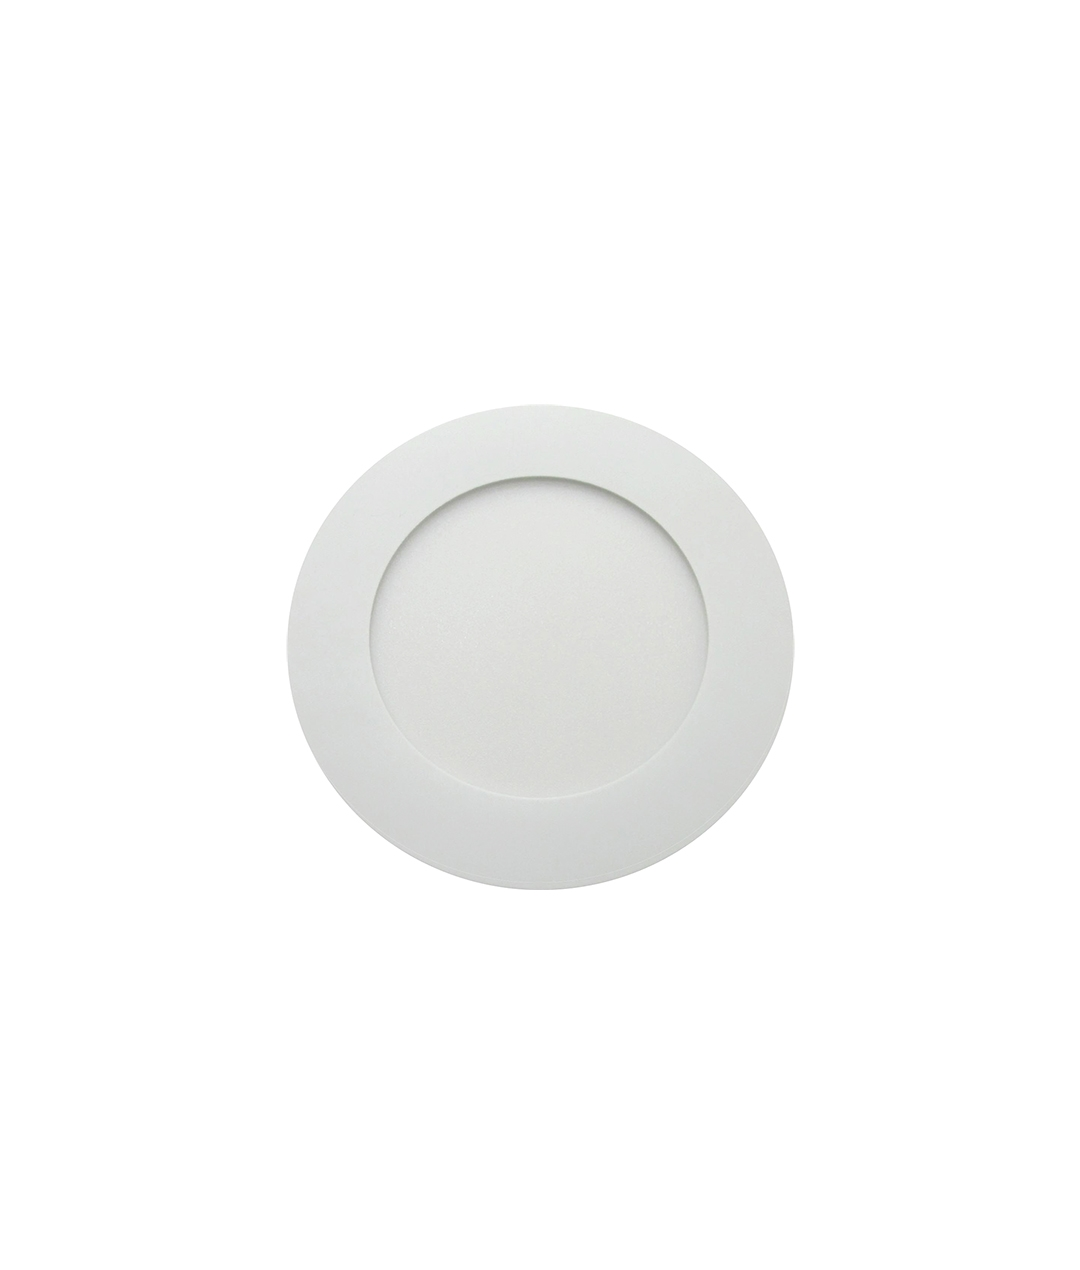 Image of: Super Thin Led Ceiling Downlight Available In 6 Wattages